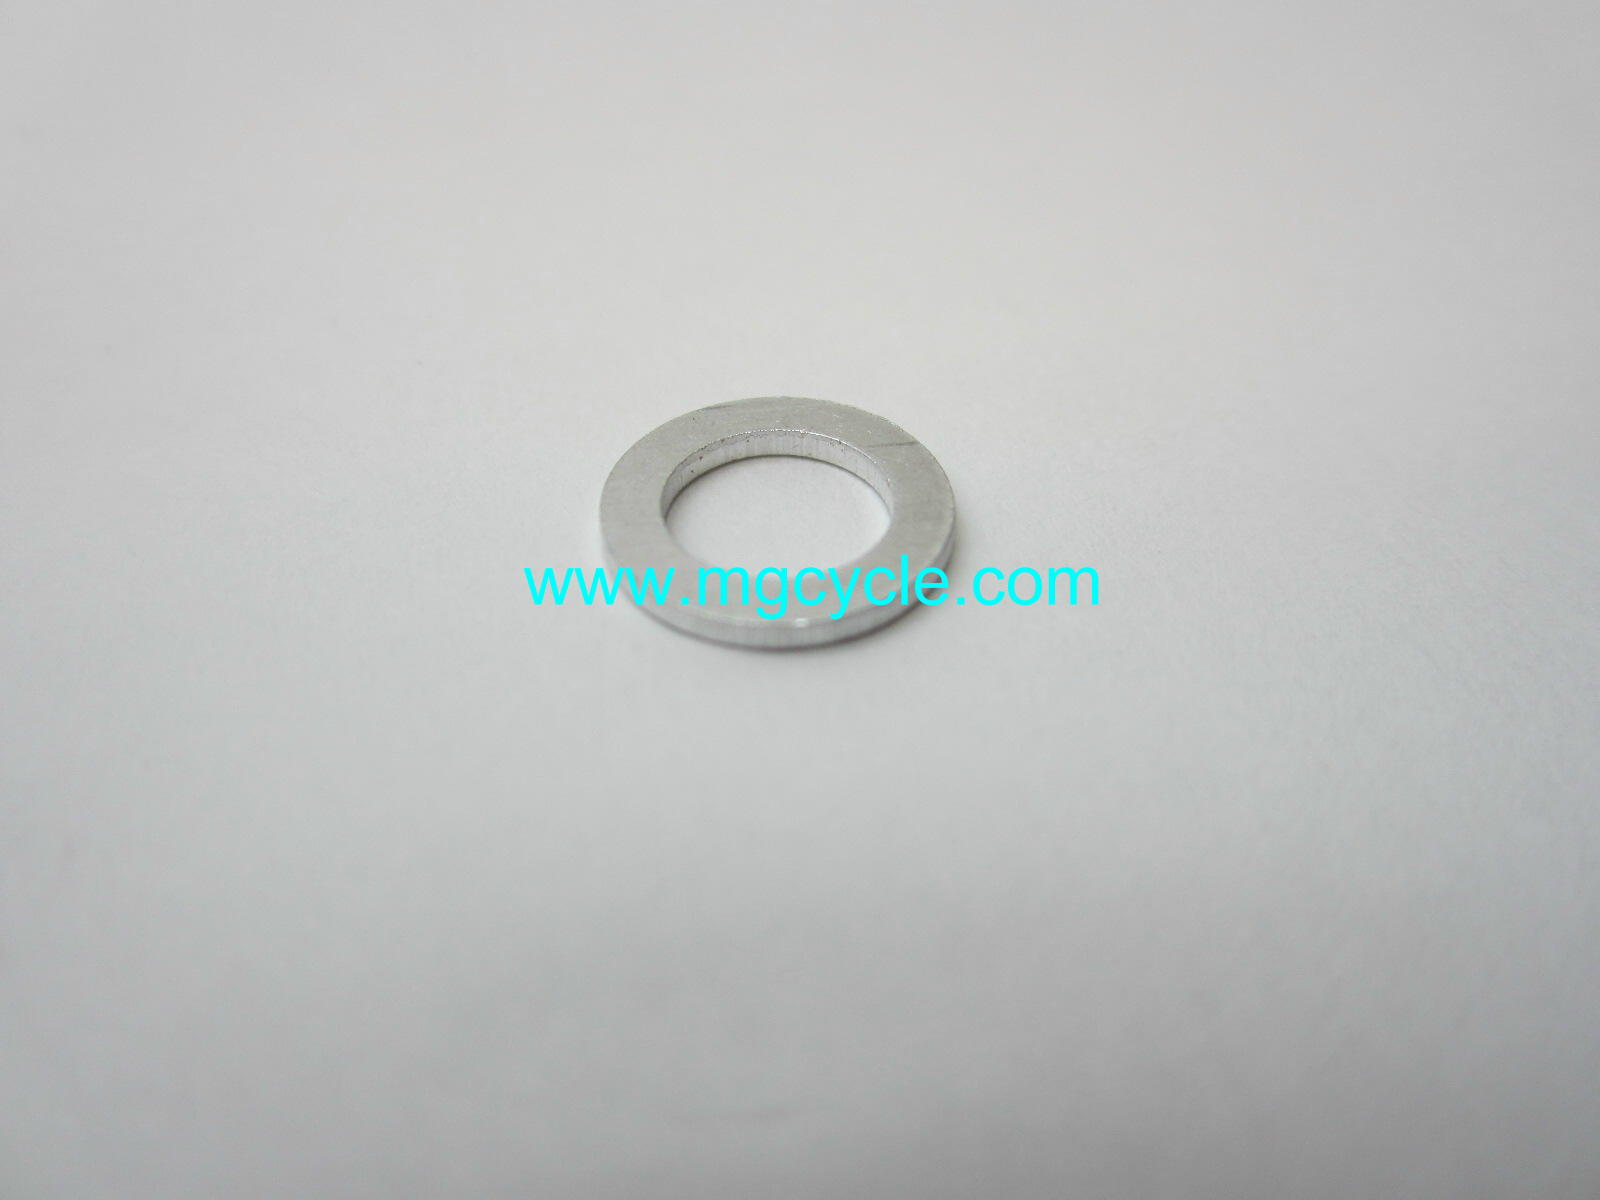 Aluminum sealing washer 6mm fork drain, fuel inlet etc 6x10